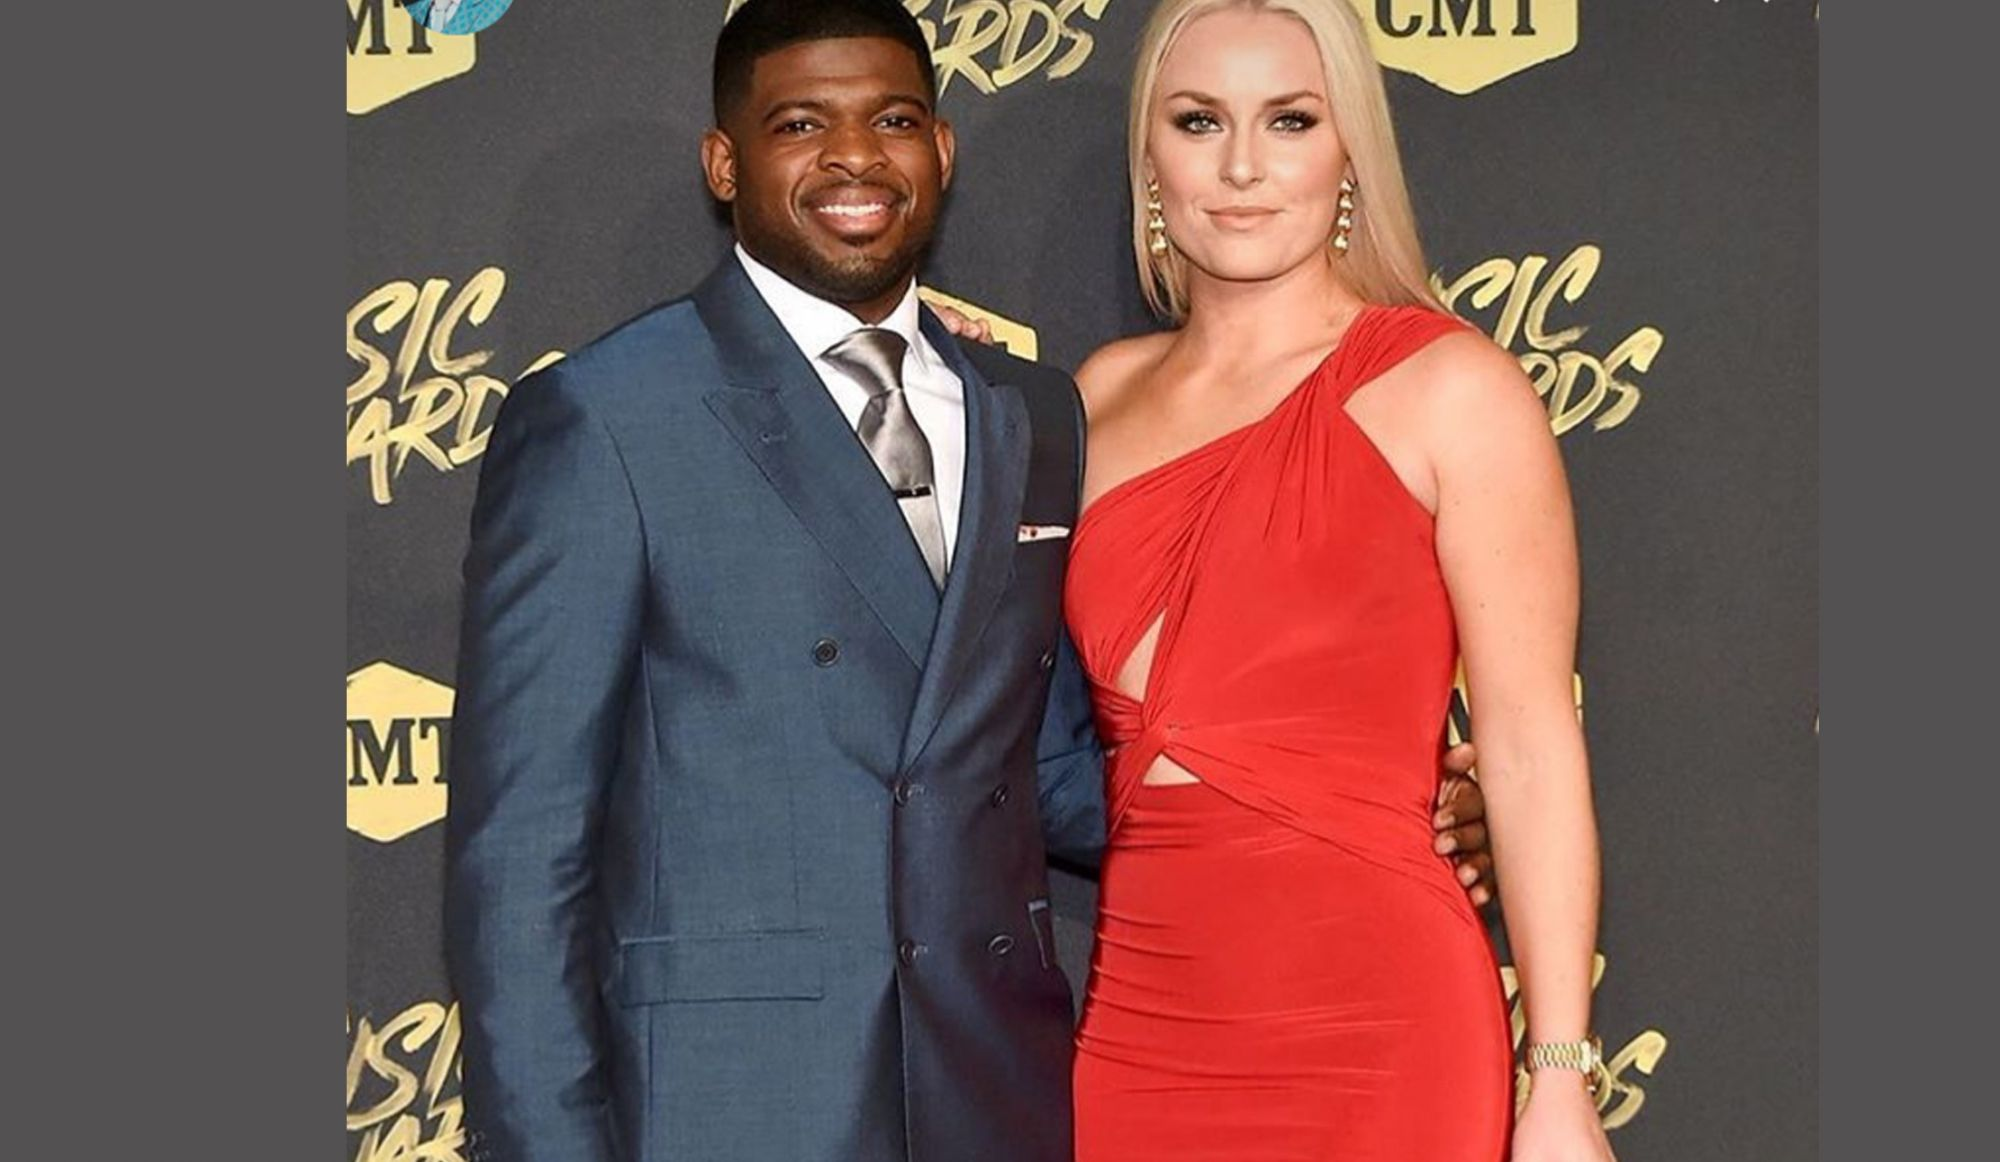 Tiger Woods' Ex is Dating P.K. Subban